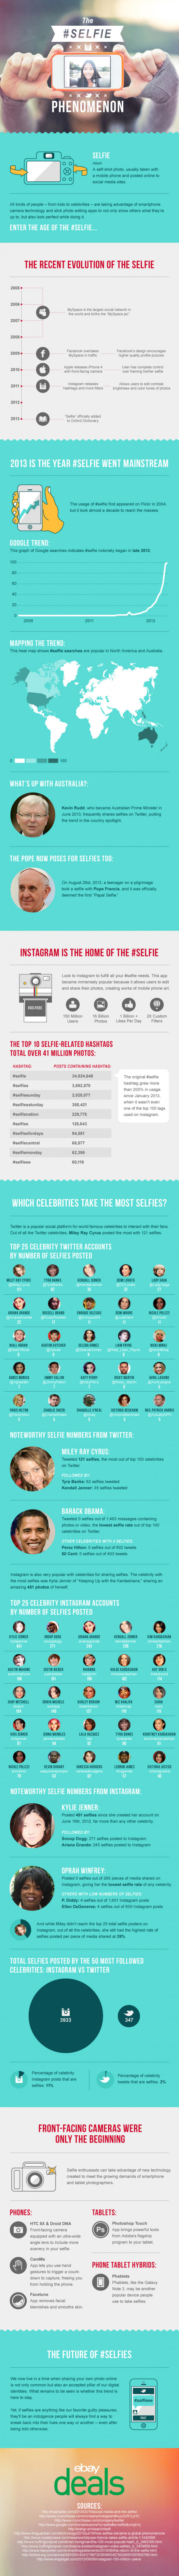 The #Selfie Phenomenon: #Infographic from Dakota Visions Photography and See You Behind the Lens...